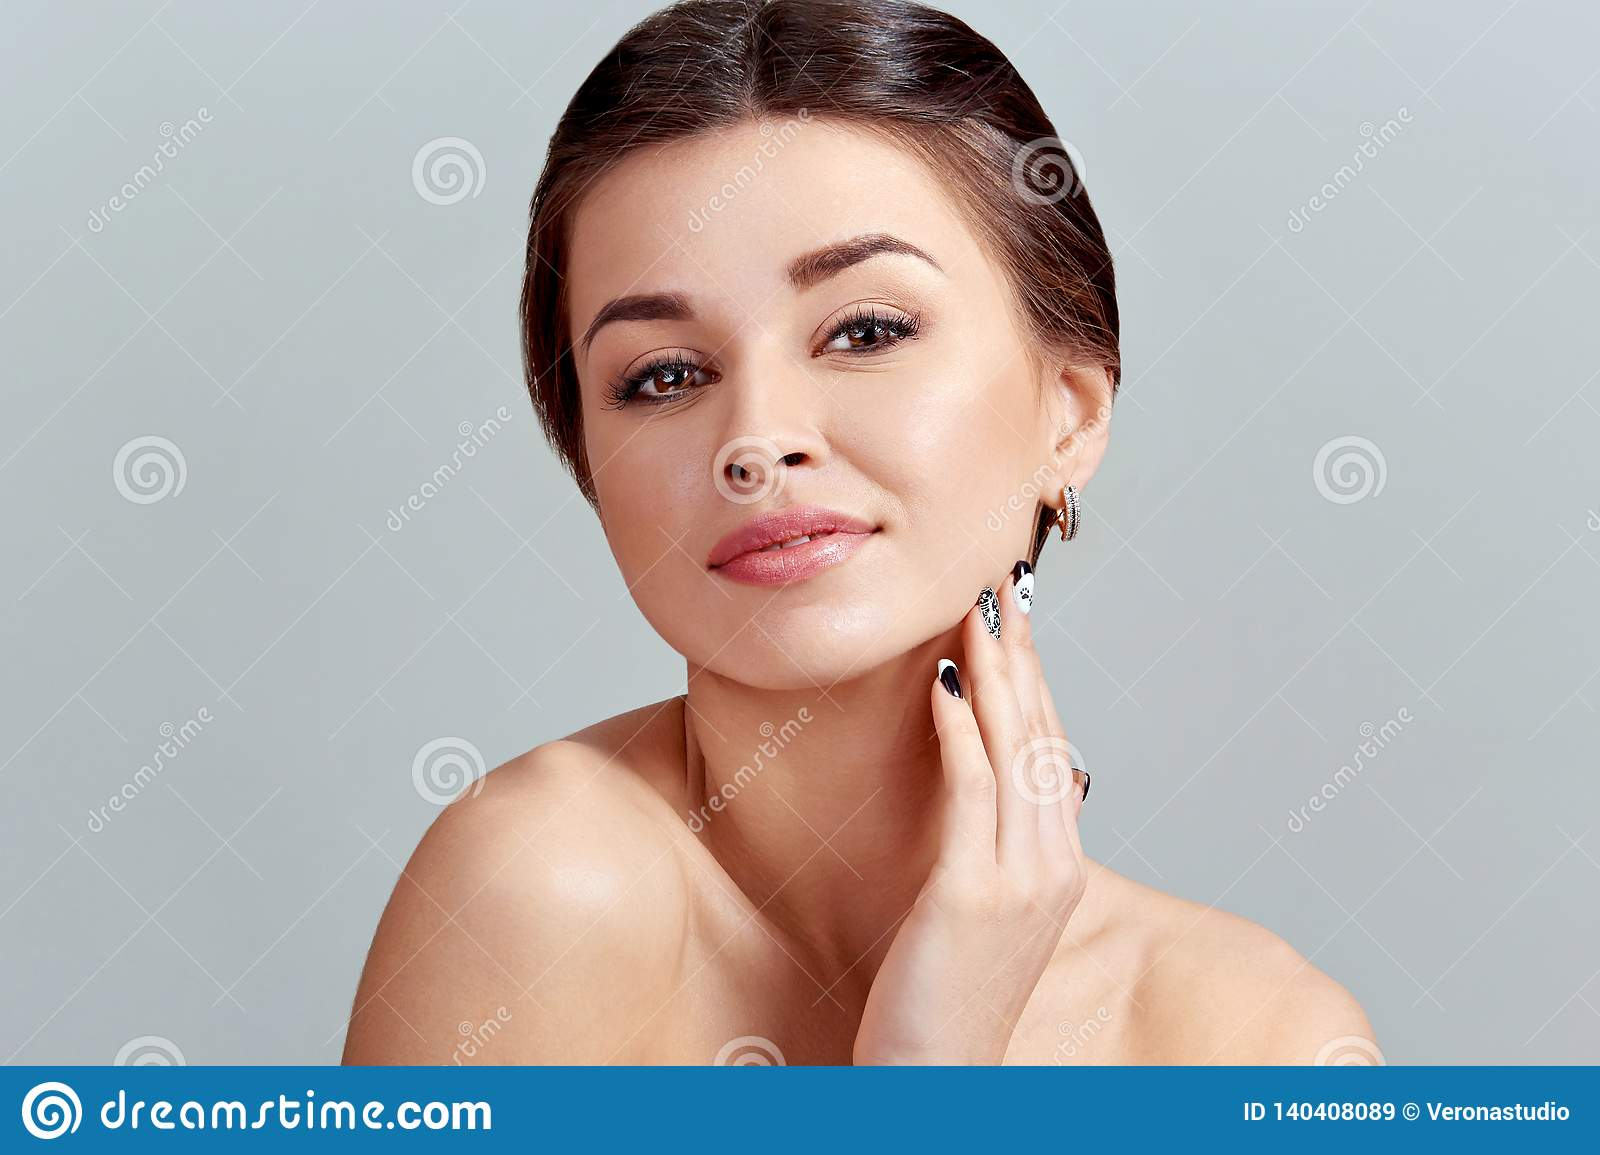 Facial Care. Female Applying Cream and Smiling. Beauty Face. Portrait Of Young Woman.